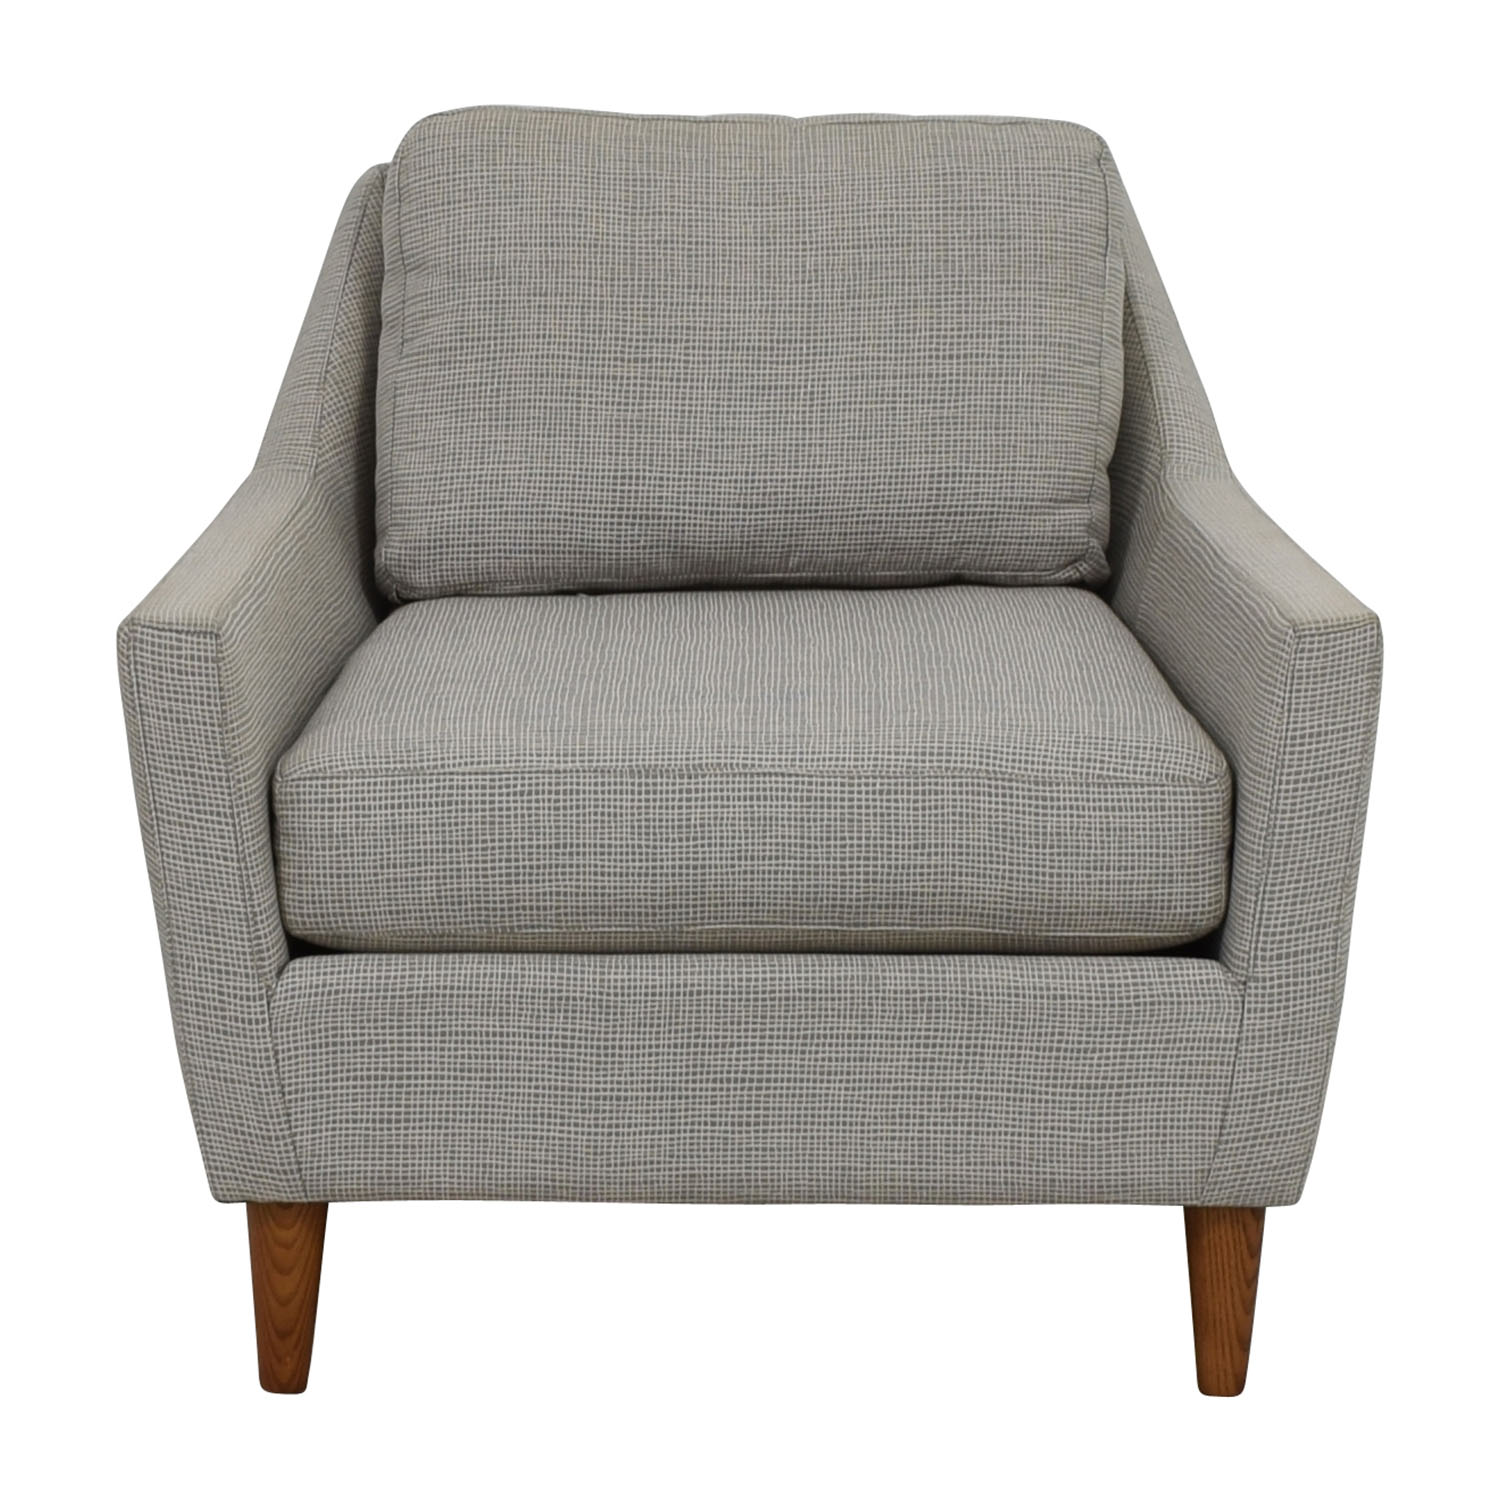 66 Off West Elm West Elm Grey Everett Sofa Chair Chairs